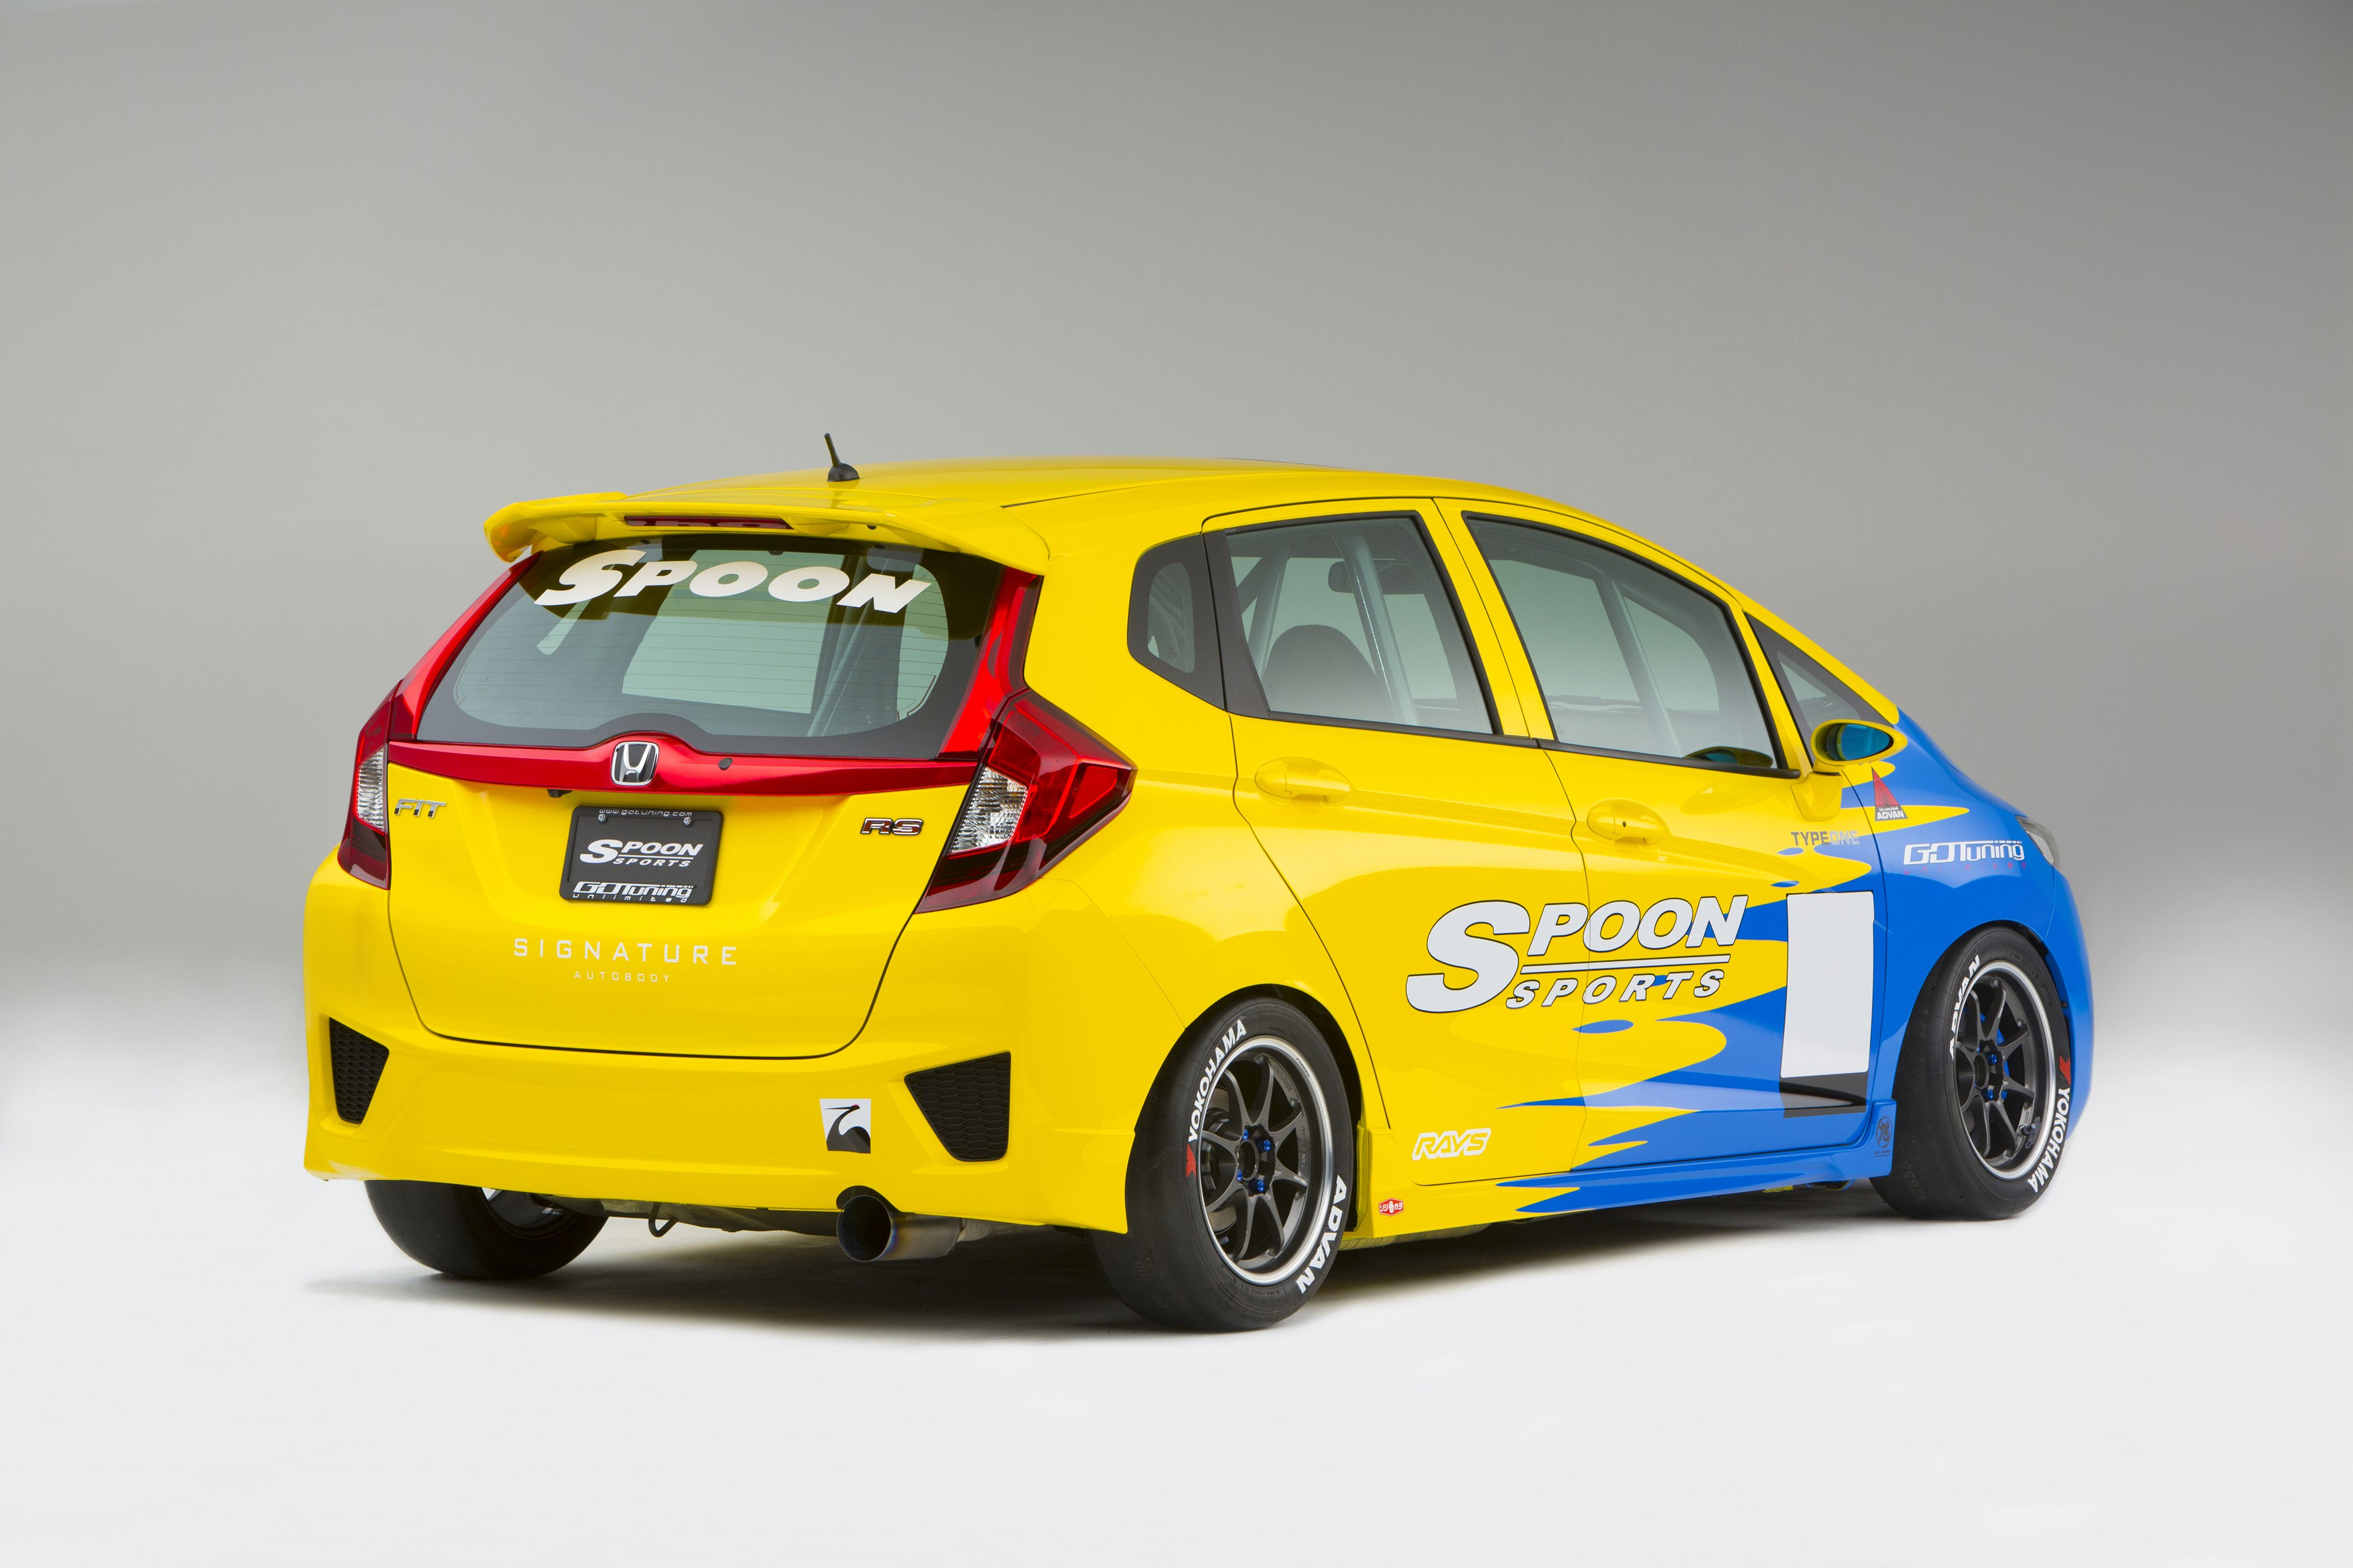 2015 Spoon-Sports Honda Fit Super Taikyu Tuning Wallpaper